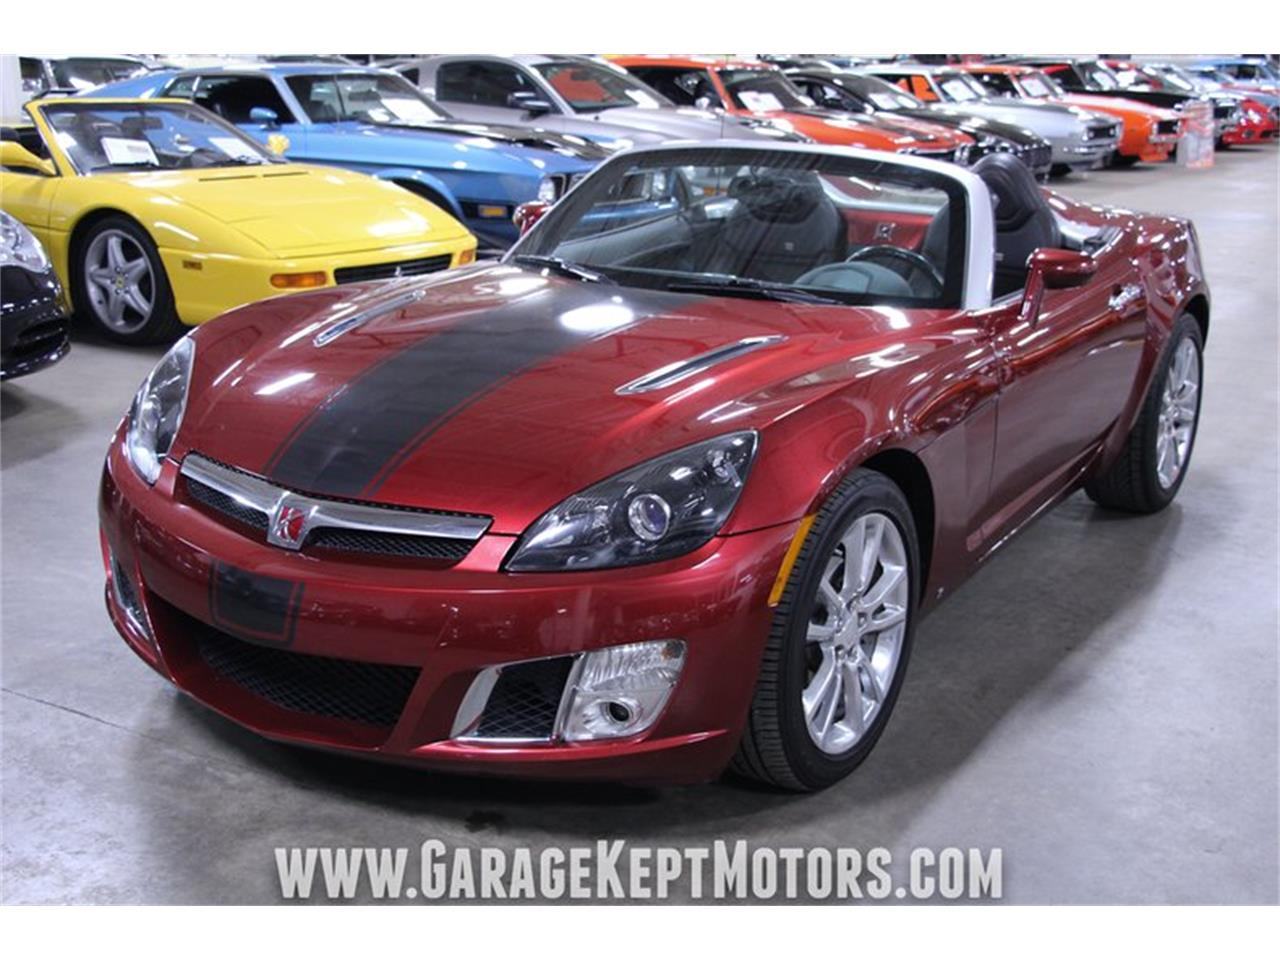 2009 Saturn Sky for sale in Grand Rapids, MI – photo 16